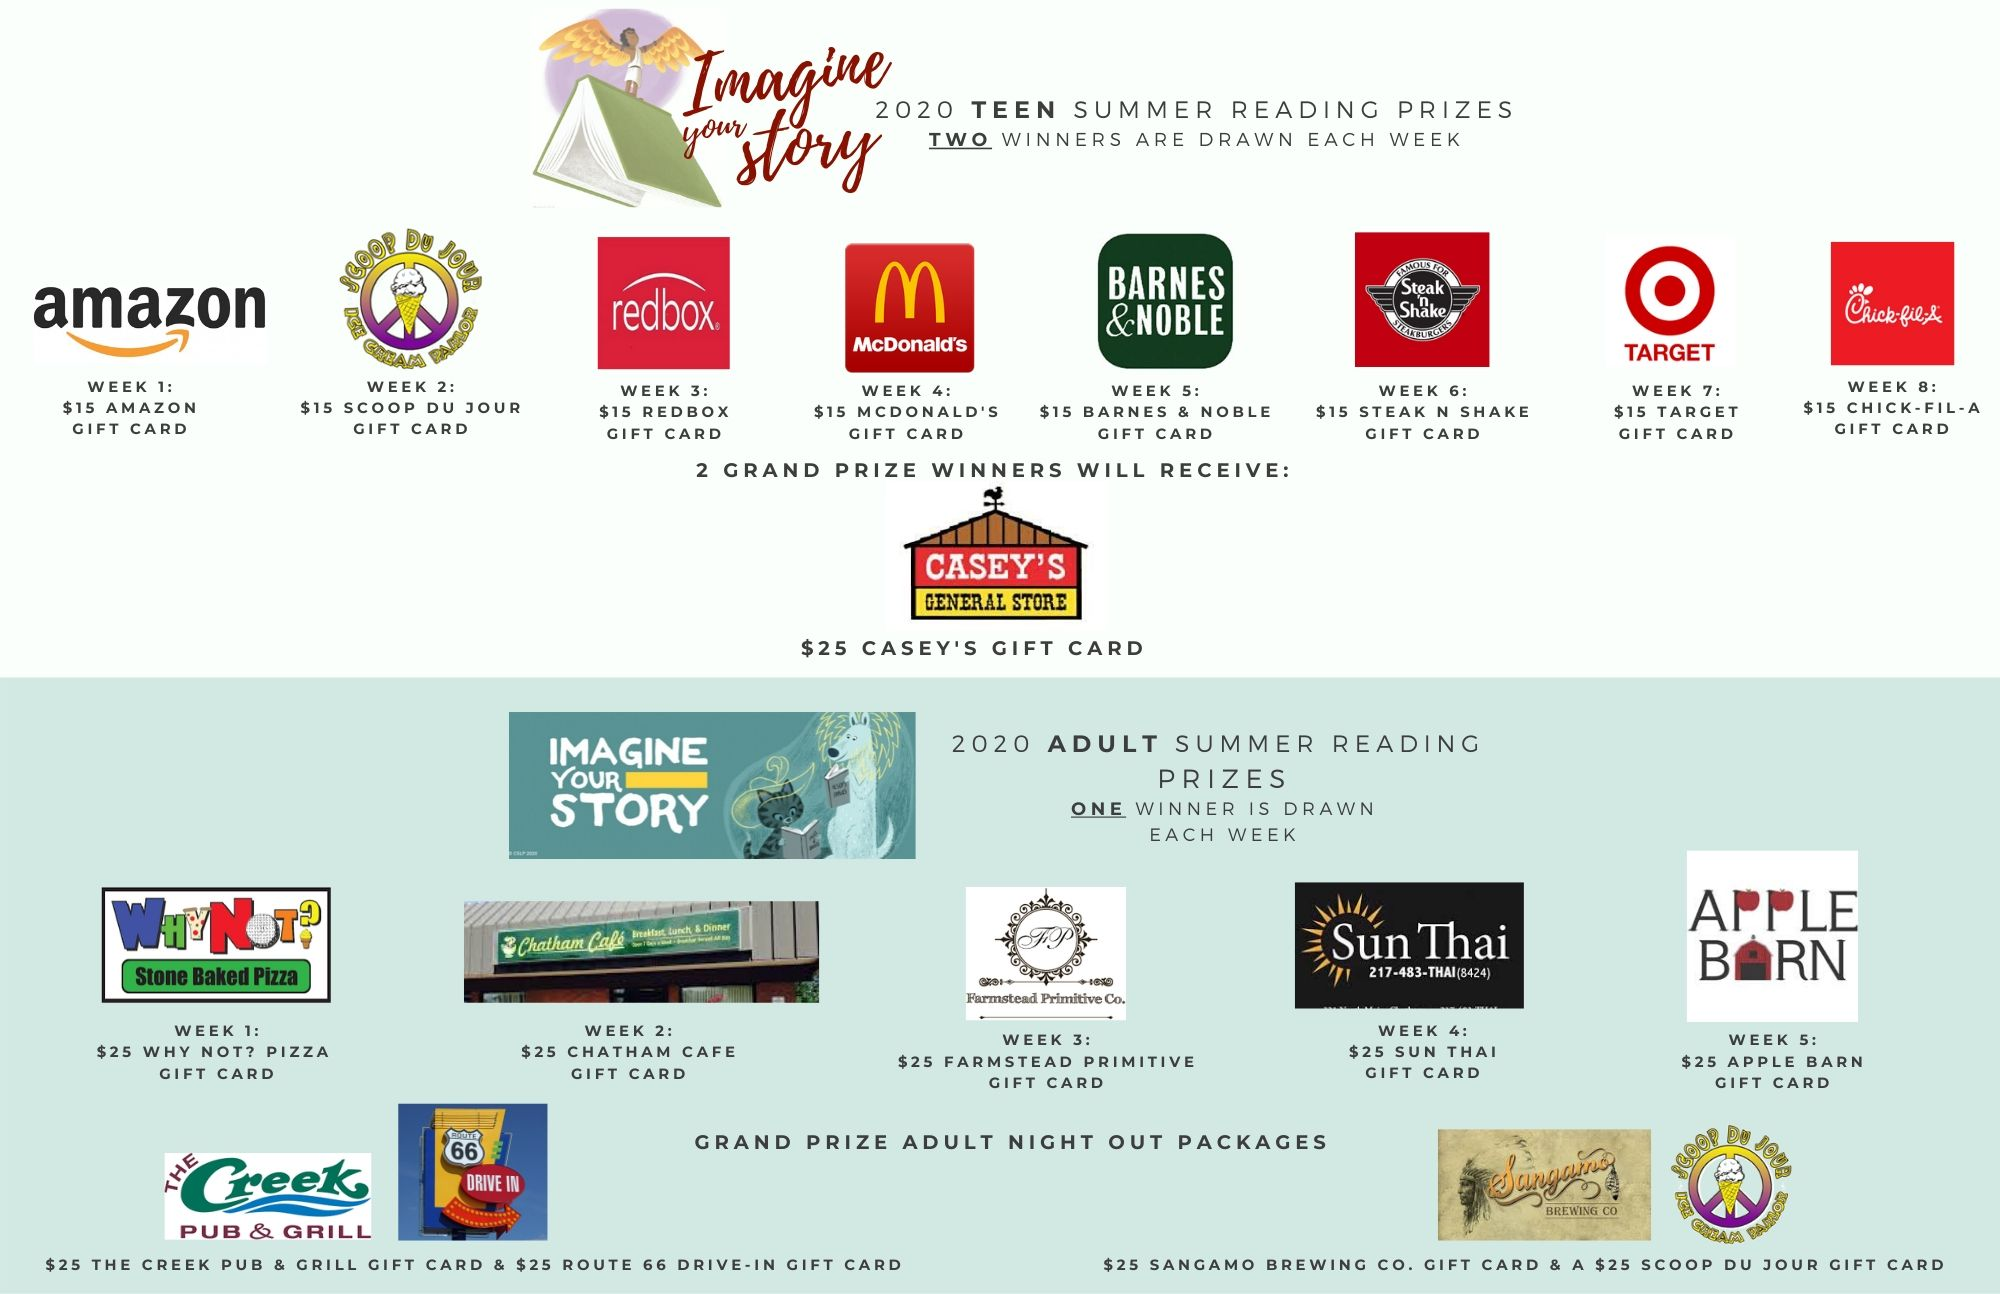 A list of prizes to be awarded for the Teen and Adult Summer Reading Programs and the associated business logos.